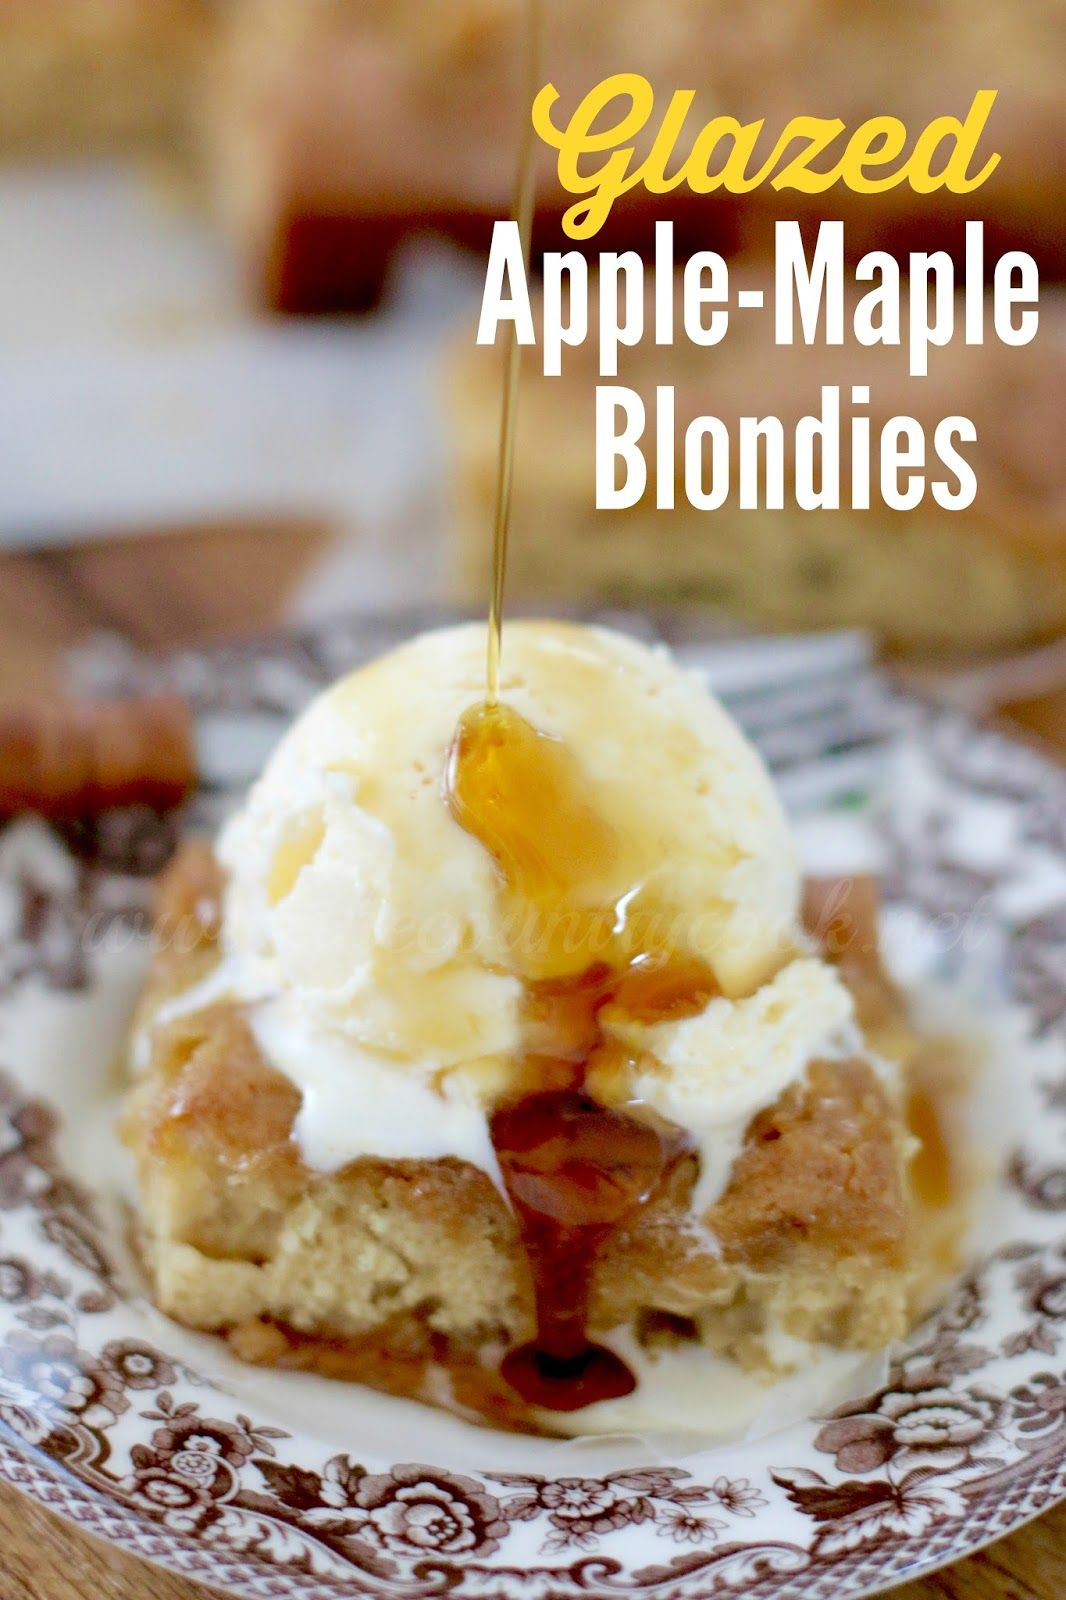 Glazed Apple-Maple Blondies - The Country Cook